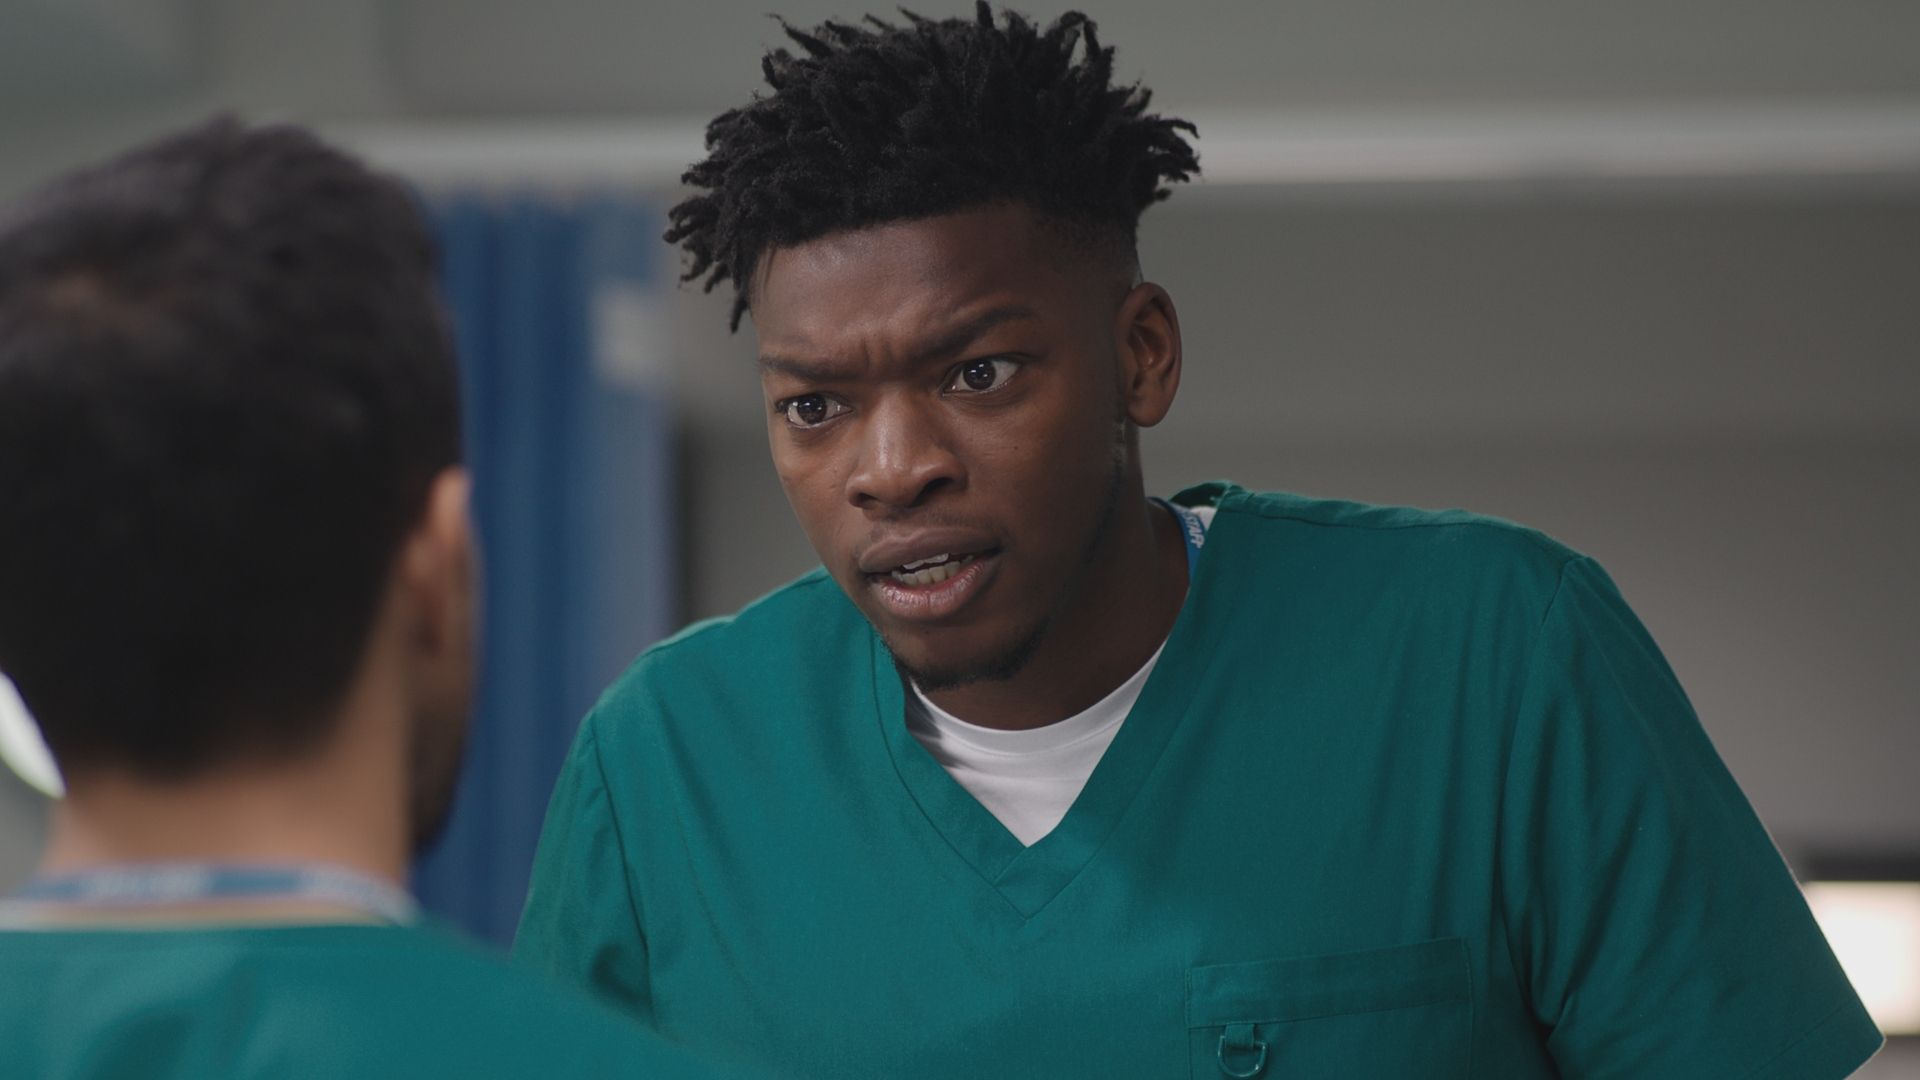 Casualty teases harrowing Archie story and Ethan romance twists in autumn trailer